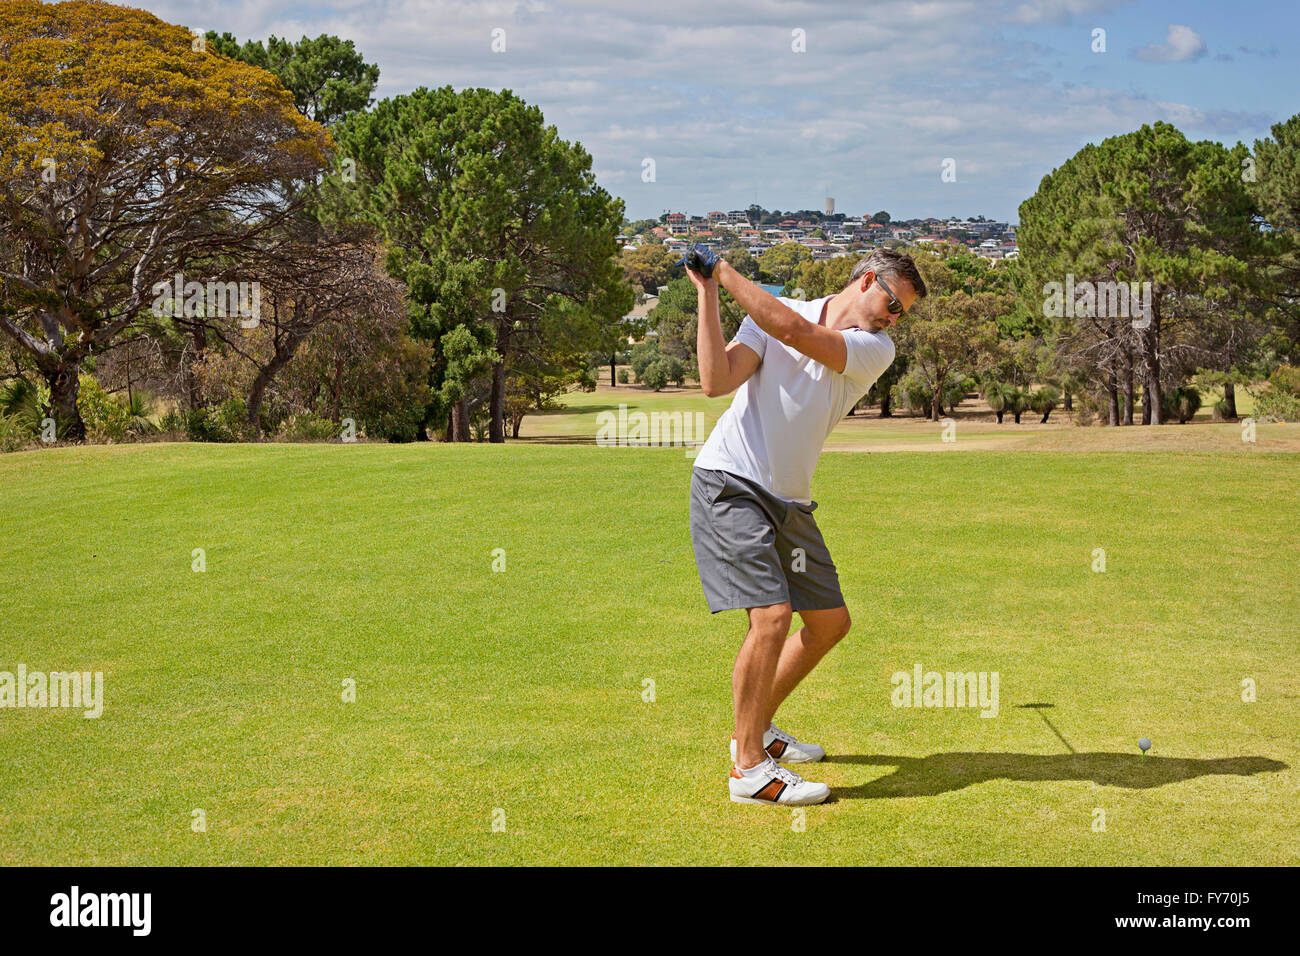 A golfer in the starting position before hitting a tee shot - Stock Image